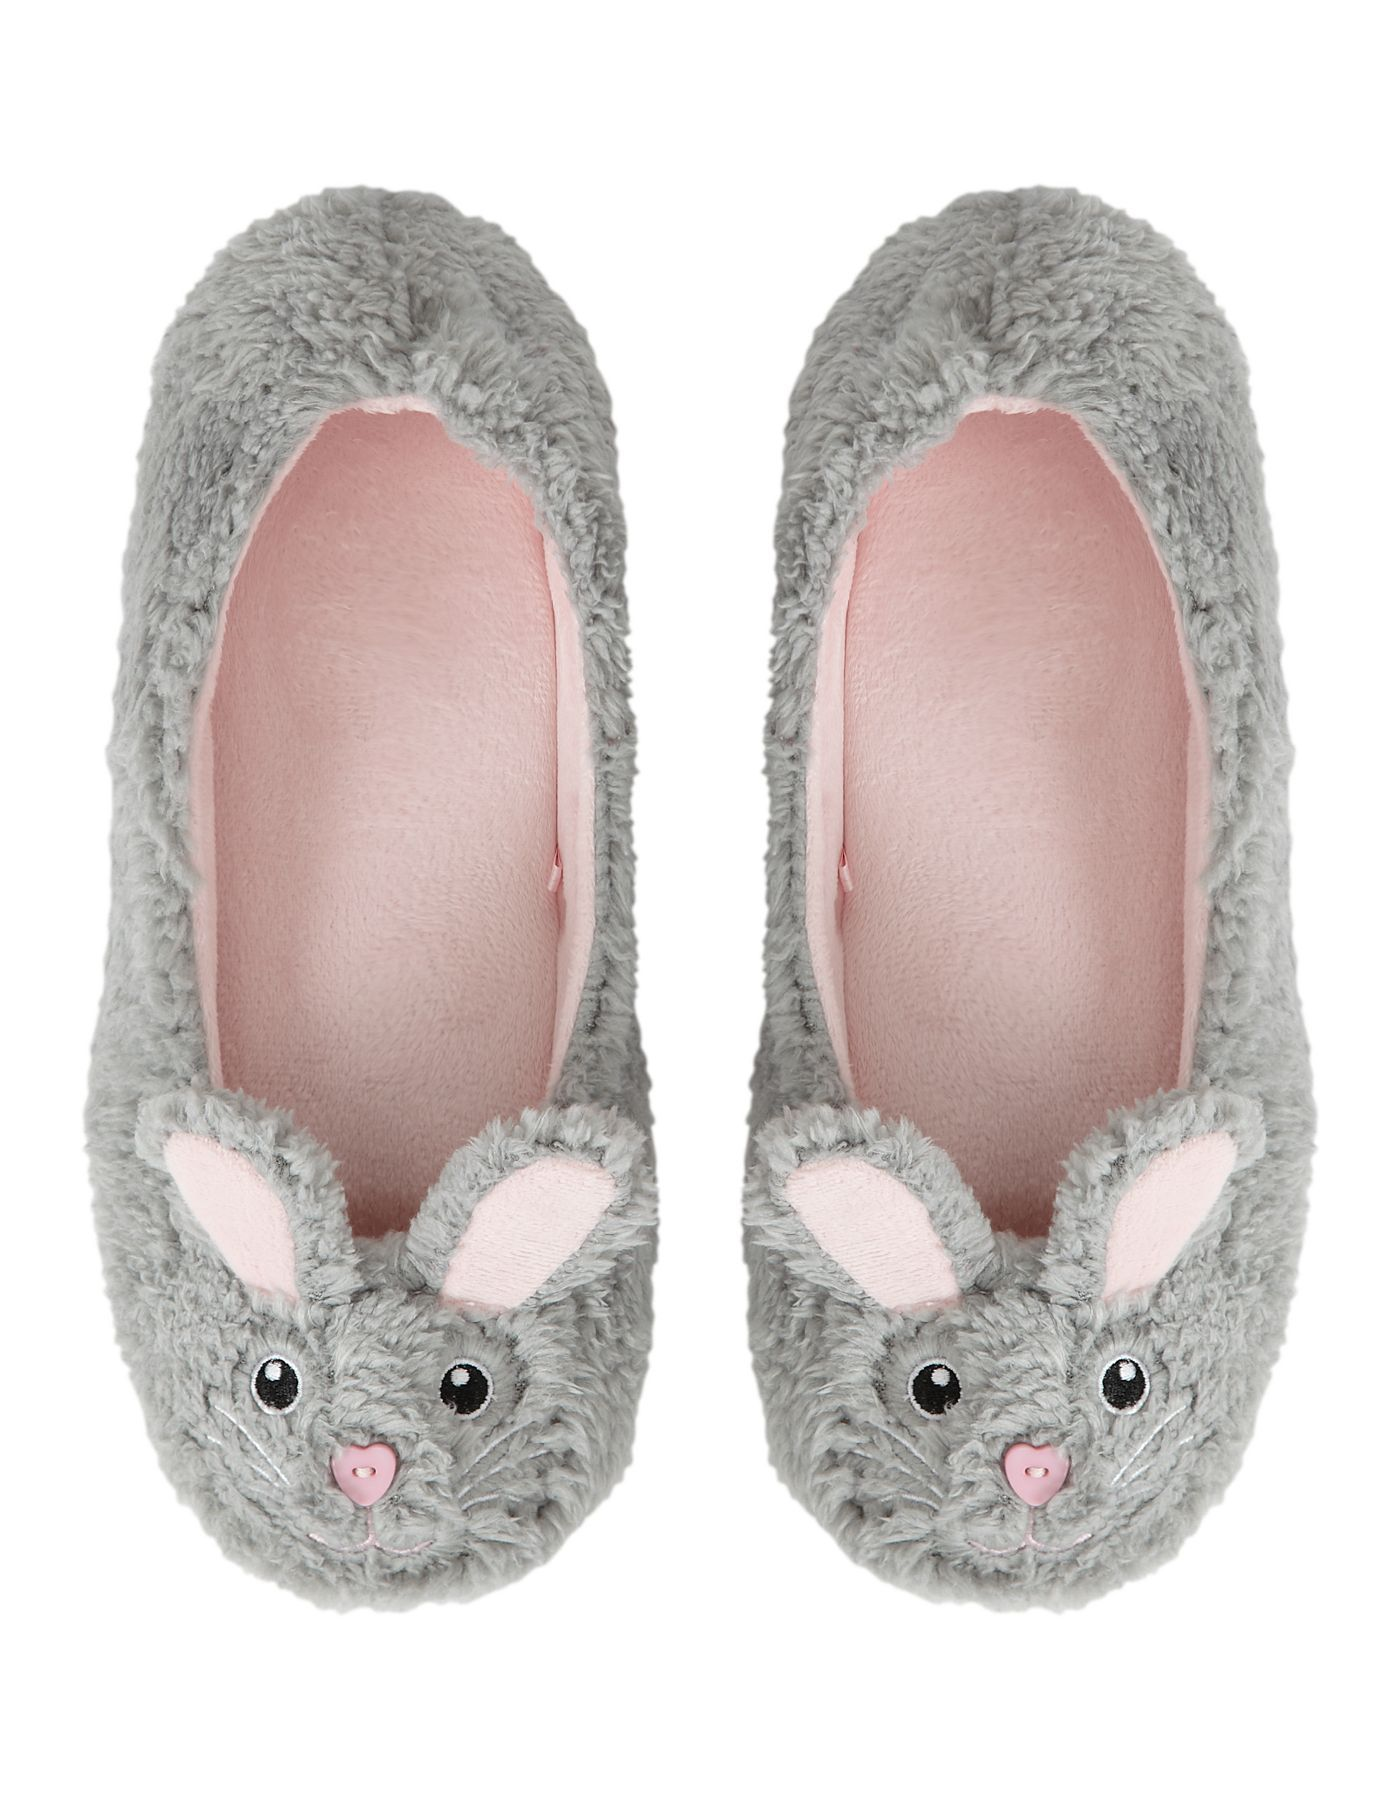 6 Rabbit Slippers | Women | George at